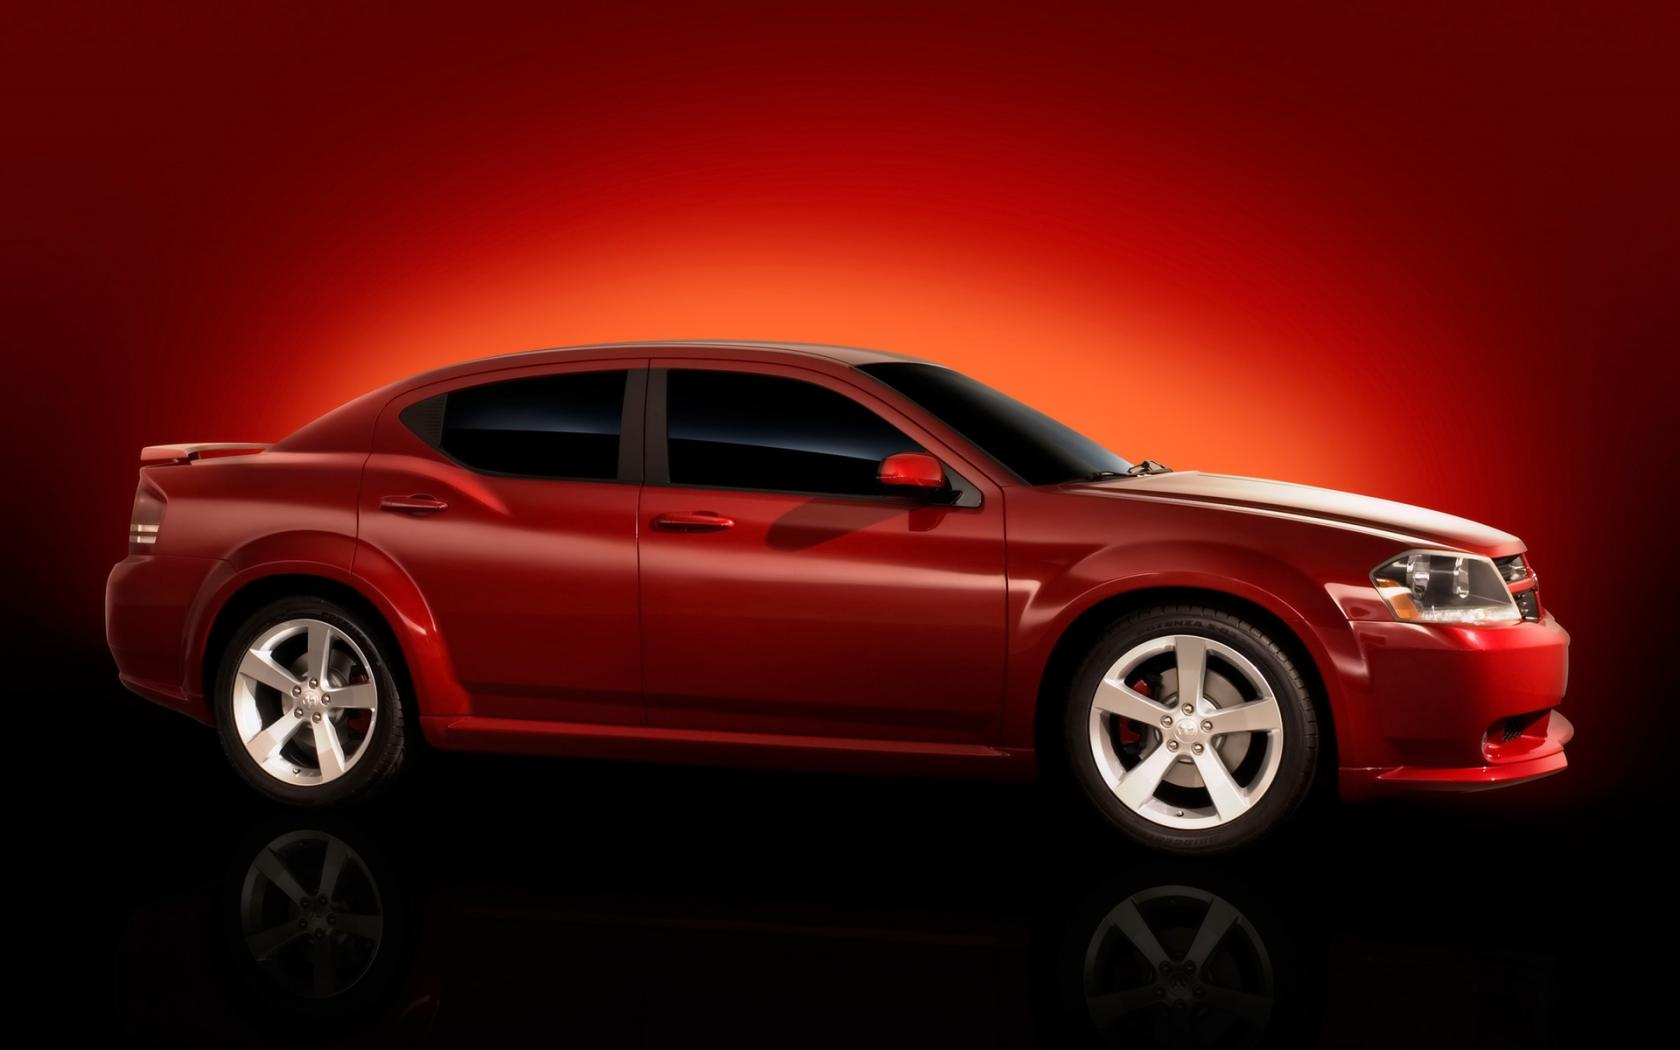 2006 Dodge Avenger Concept Side 1680x1050